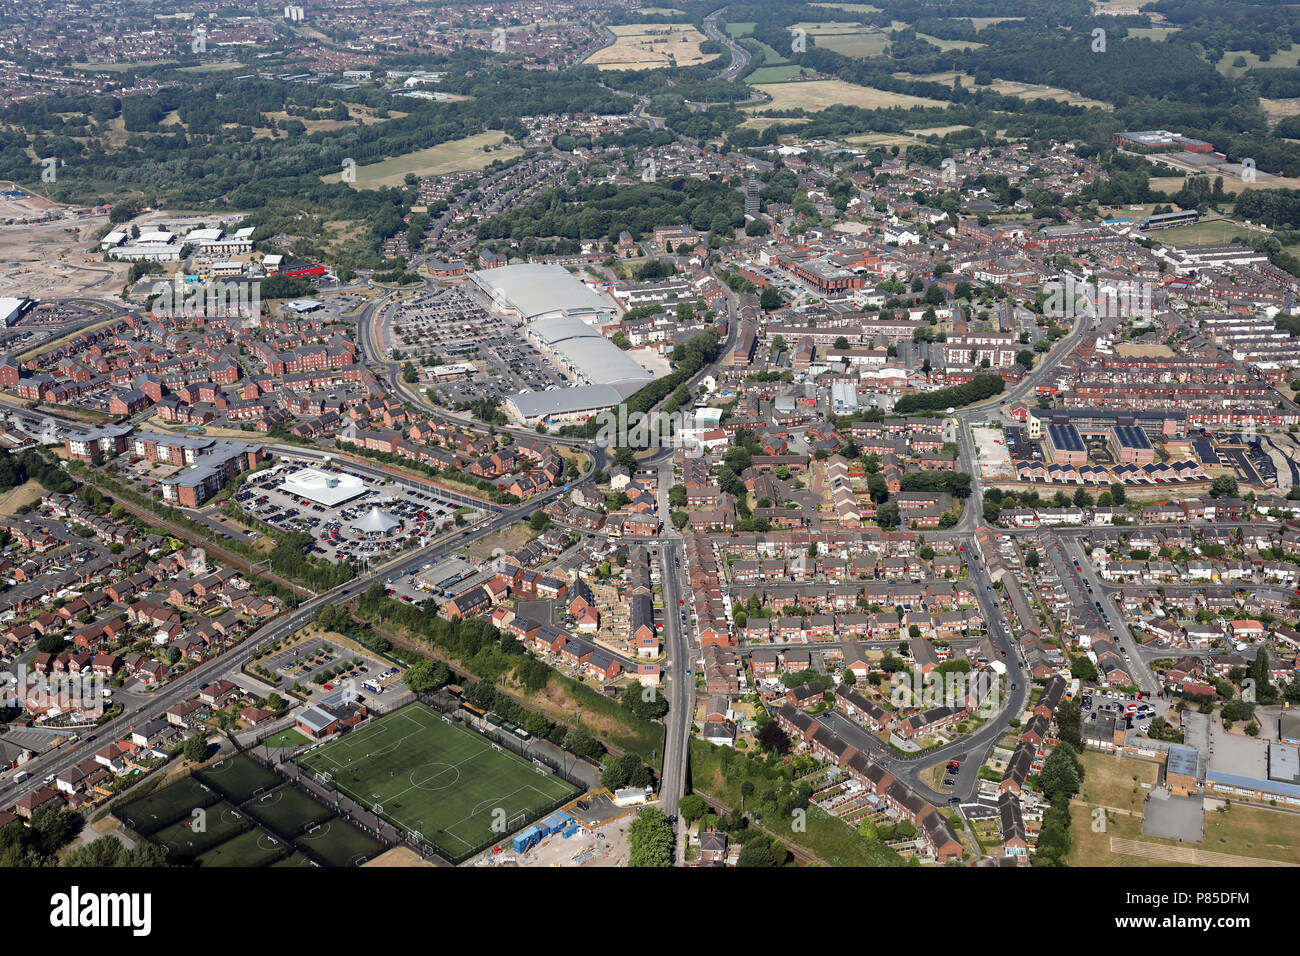 aerial view of the town of Prescot, Merseyside - Stock Image